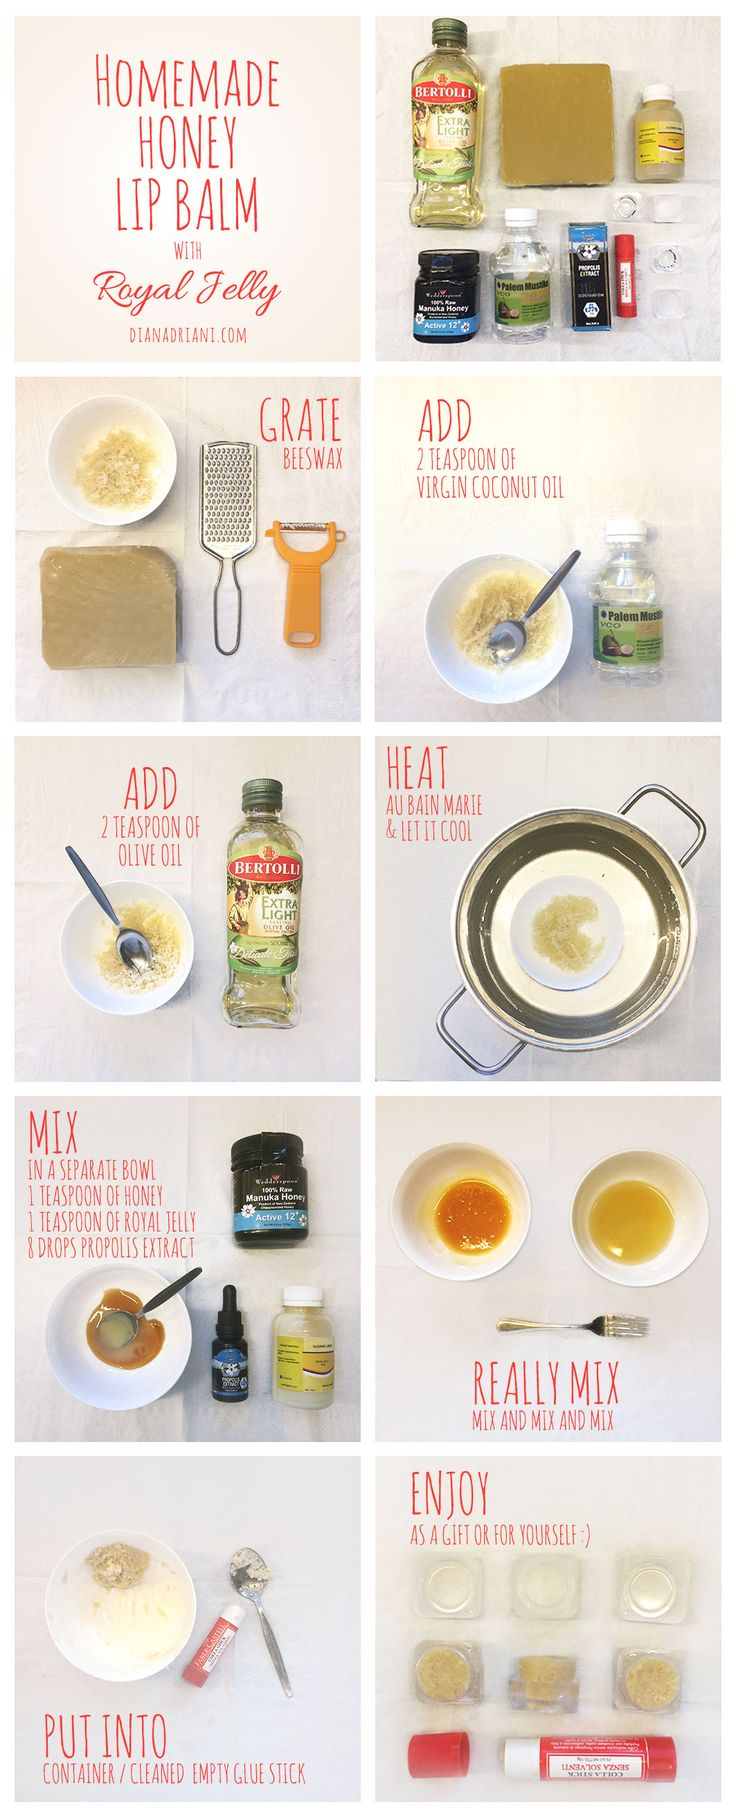 Homemade Honey Lip balm with Royal Jelly (Pictorial) - Dian Adriani #skincare #diy #makeup #lip balm #lipbalm #homemade #diymakeup #diyskincare #honey #organic #natural #pictorial #tutorial